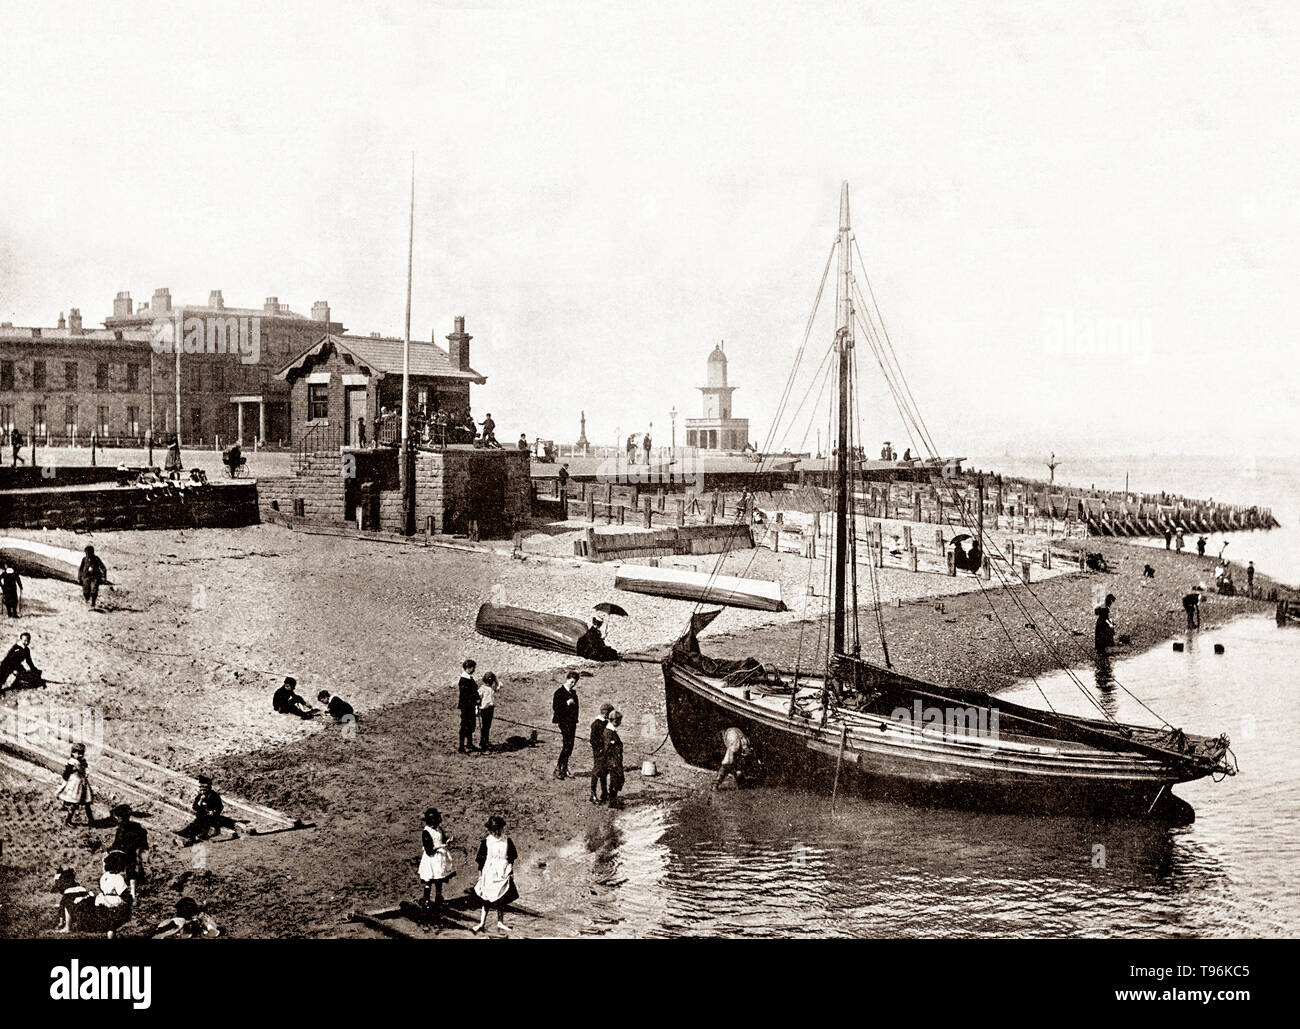 A late 19th Century view of  a sailing boat, drawn up on the beach at Fleetwood, a coastal town in Lancashire, England, at the northwest corner of the Fylde. The town expanded greatly with the growth of the fishing industry, and passenger ferries to the Isle of Man, to become a deep-sea fishing port. - Stock Image